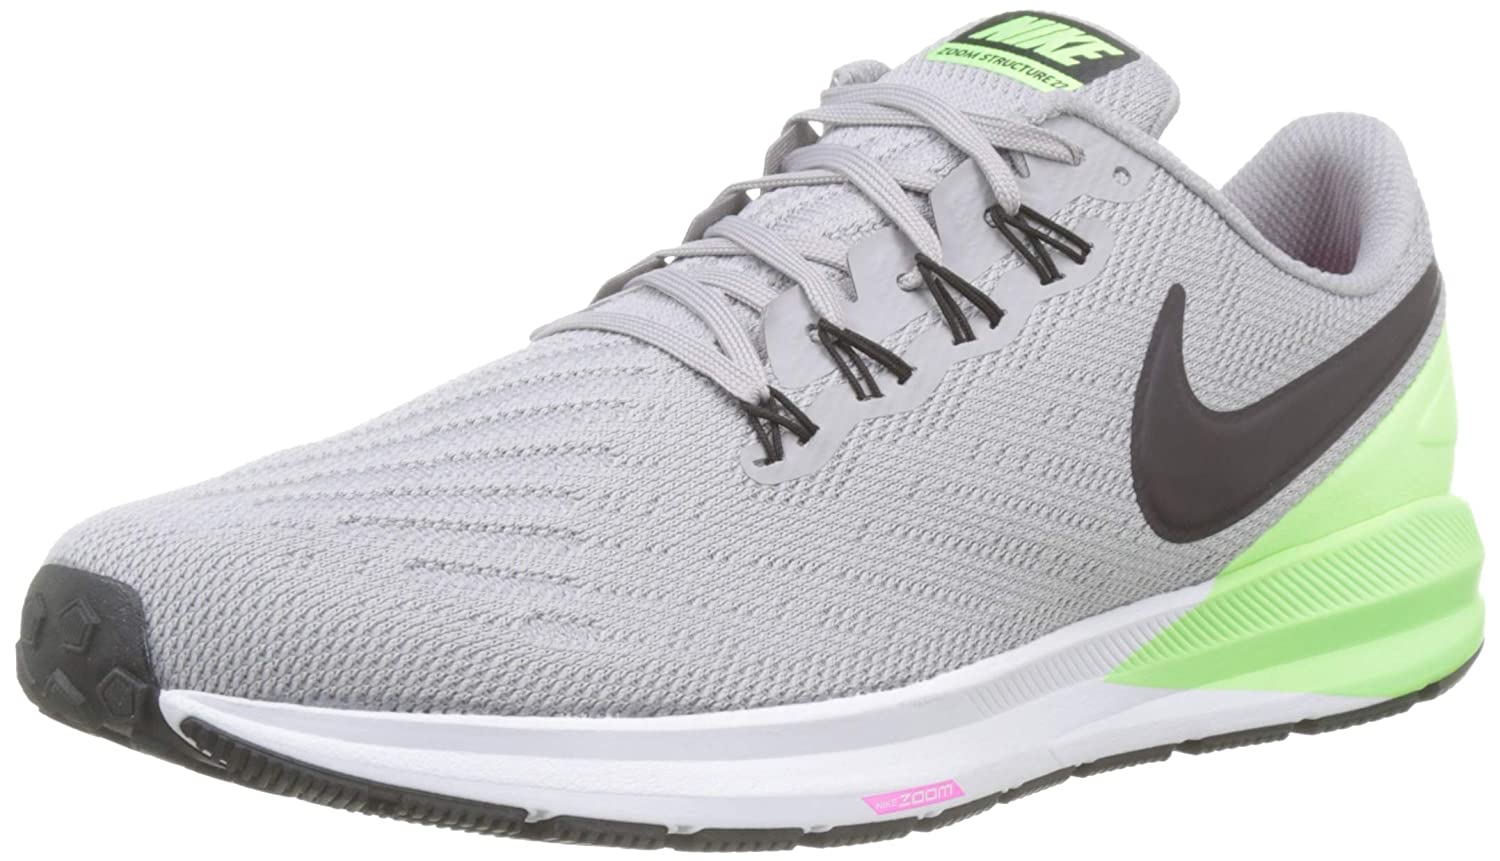 MultiCouleure (Atmosphere gris Burgundy Ash Lime Blast 004) Nike Air Zoom Structure 22, Chaussures d'Athlétisme Homme 44.5 EU